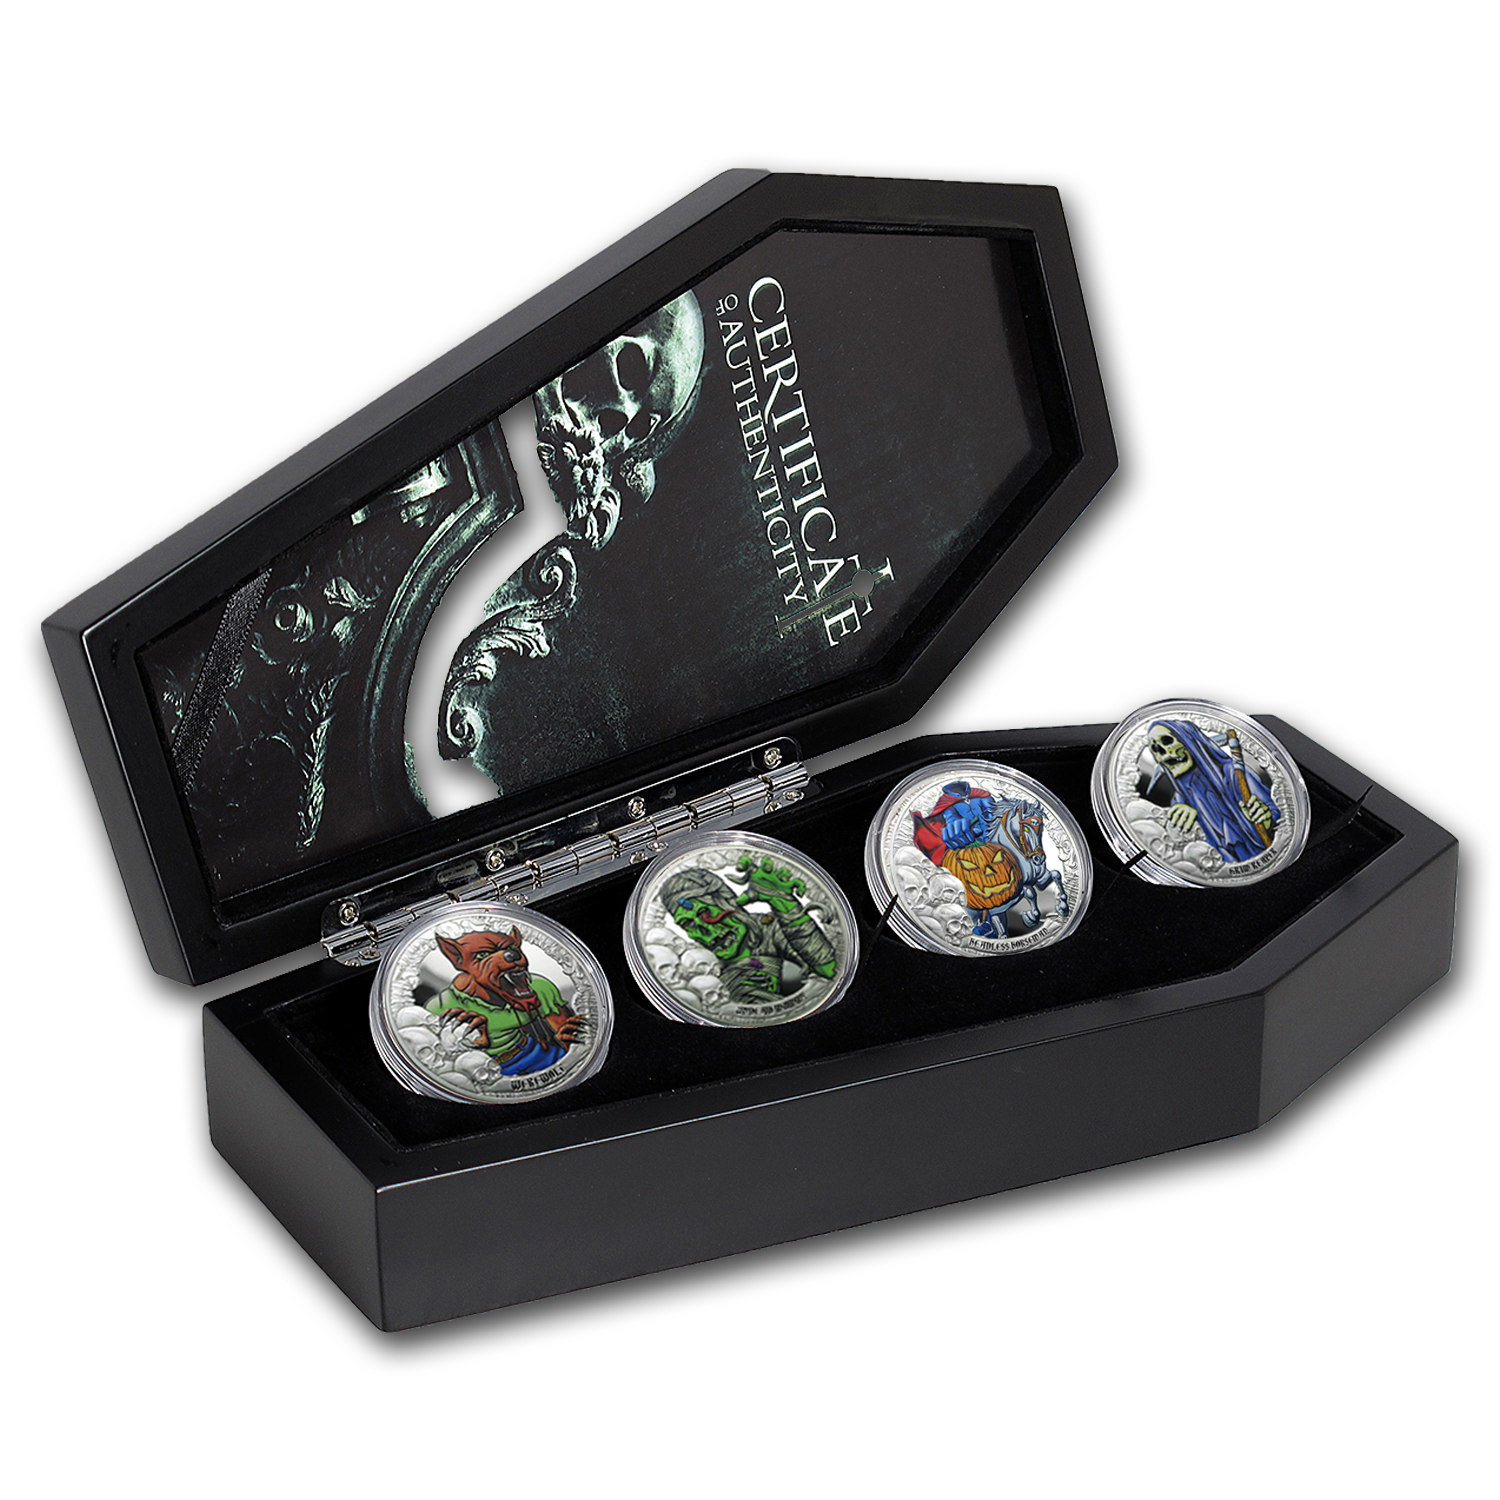 2016 Republic of Kiribati 4-coin Set Silver Coins from the Crypt